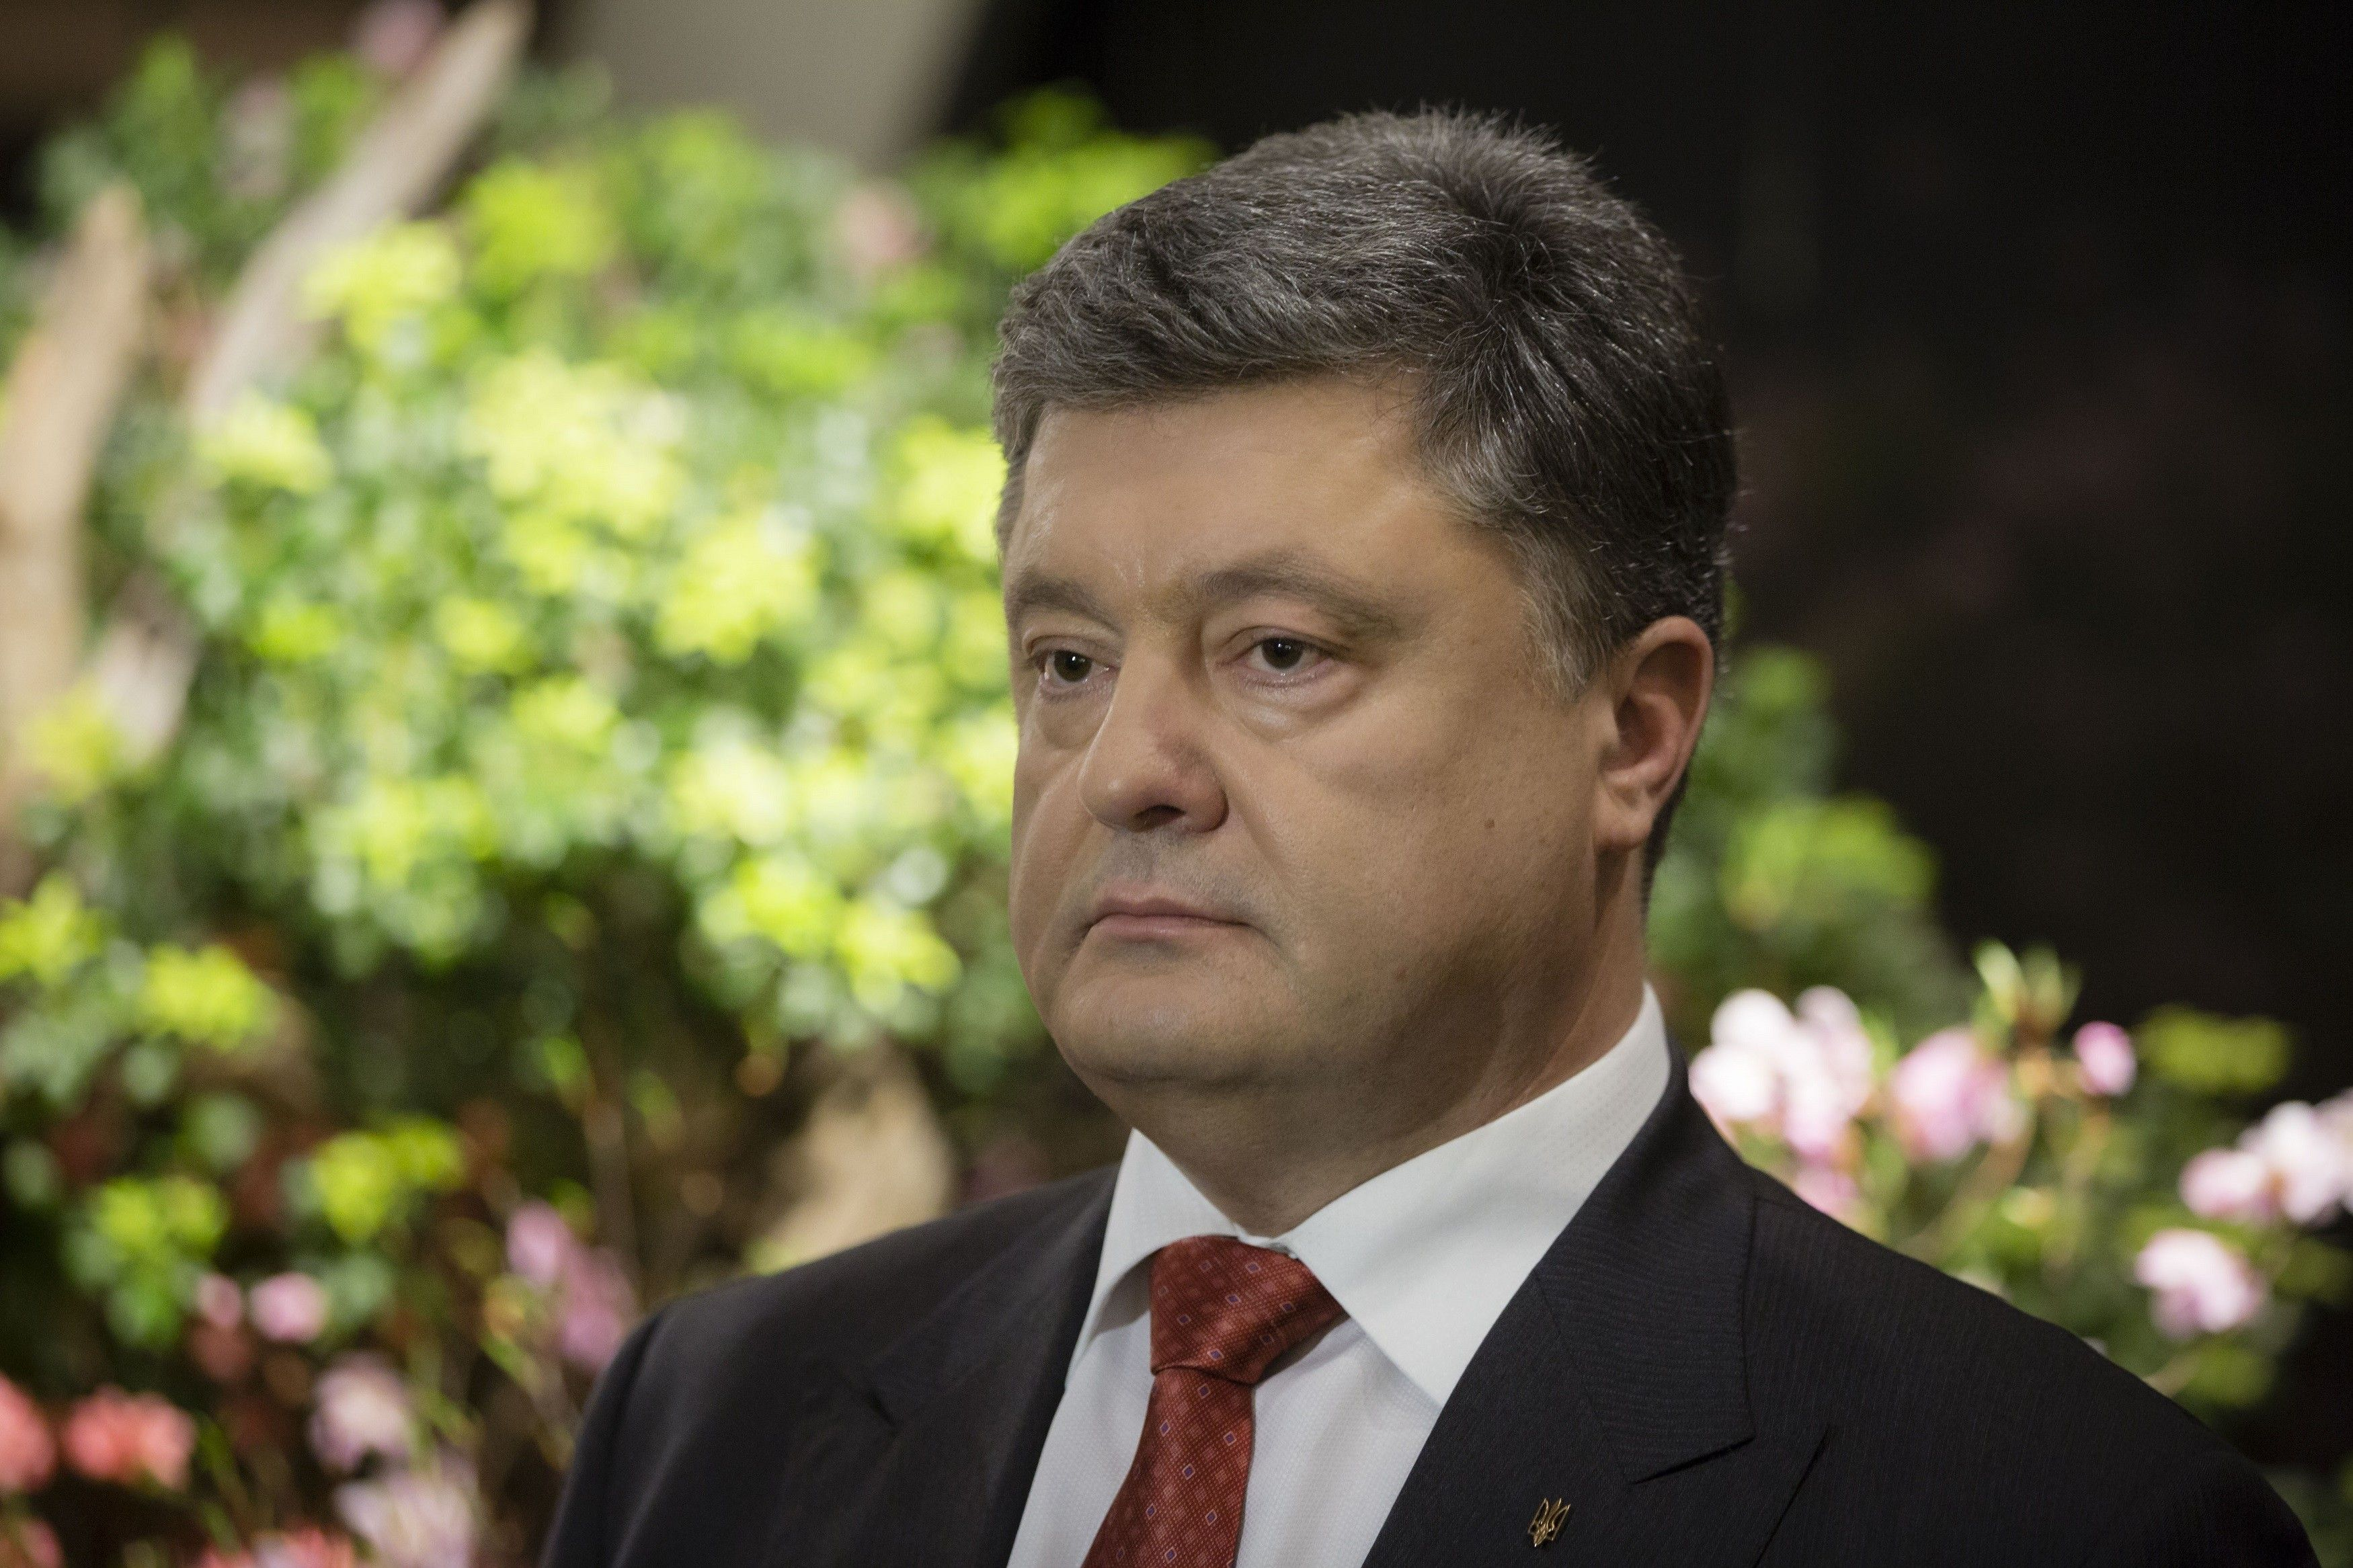 Poroshenko has introduced personal sanctions agianst media executives from LifeNews, RT, TASS / Photo from president.gov.ua